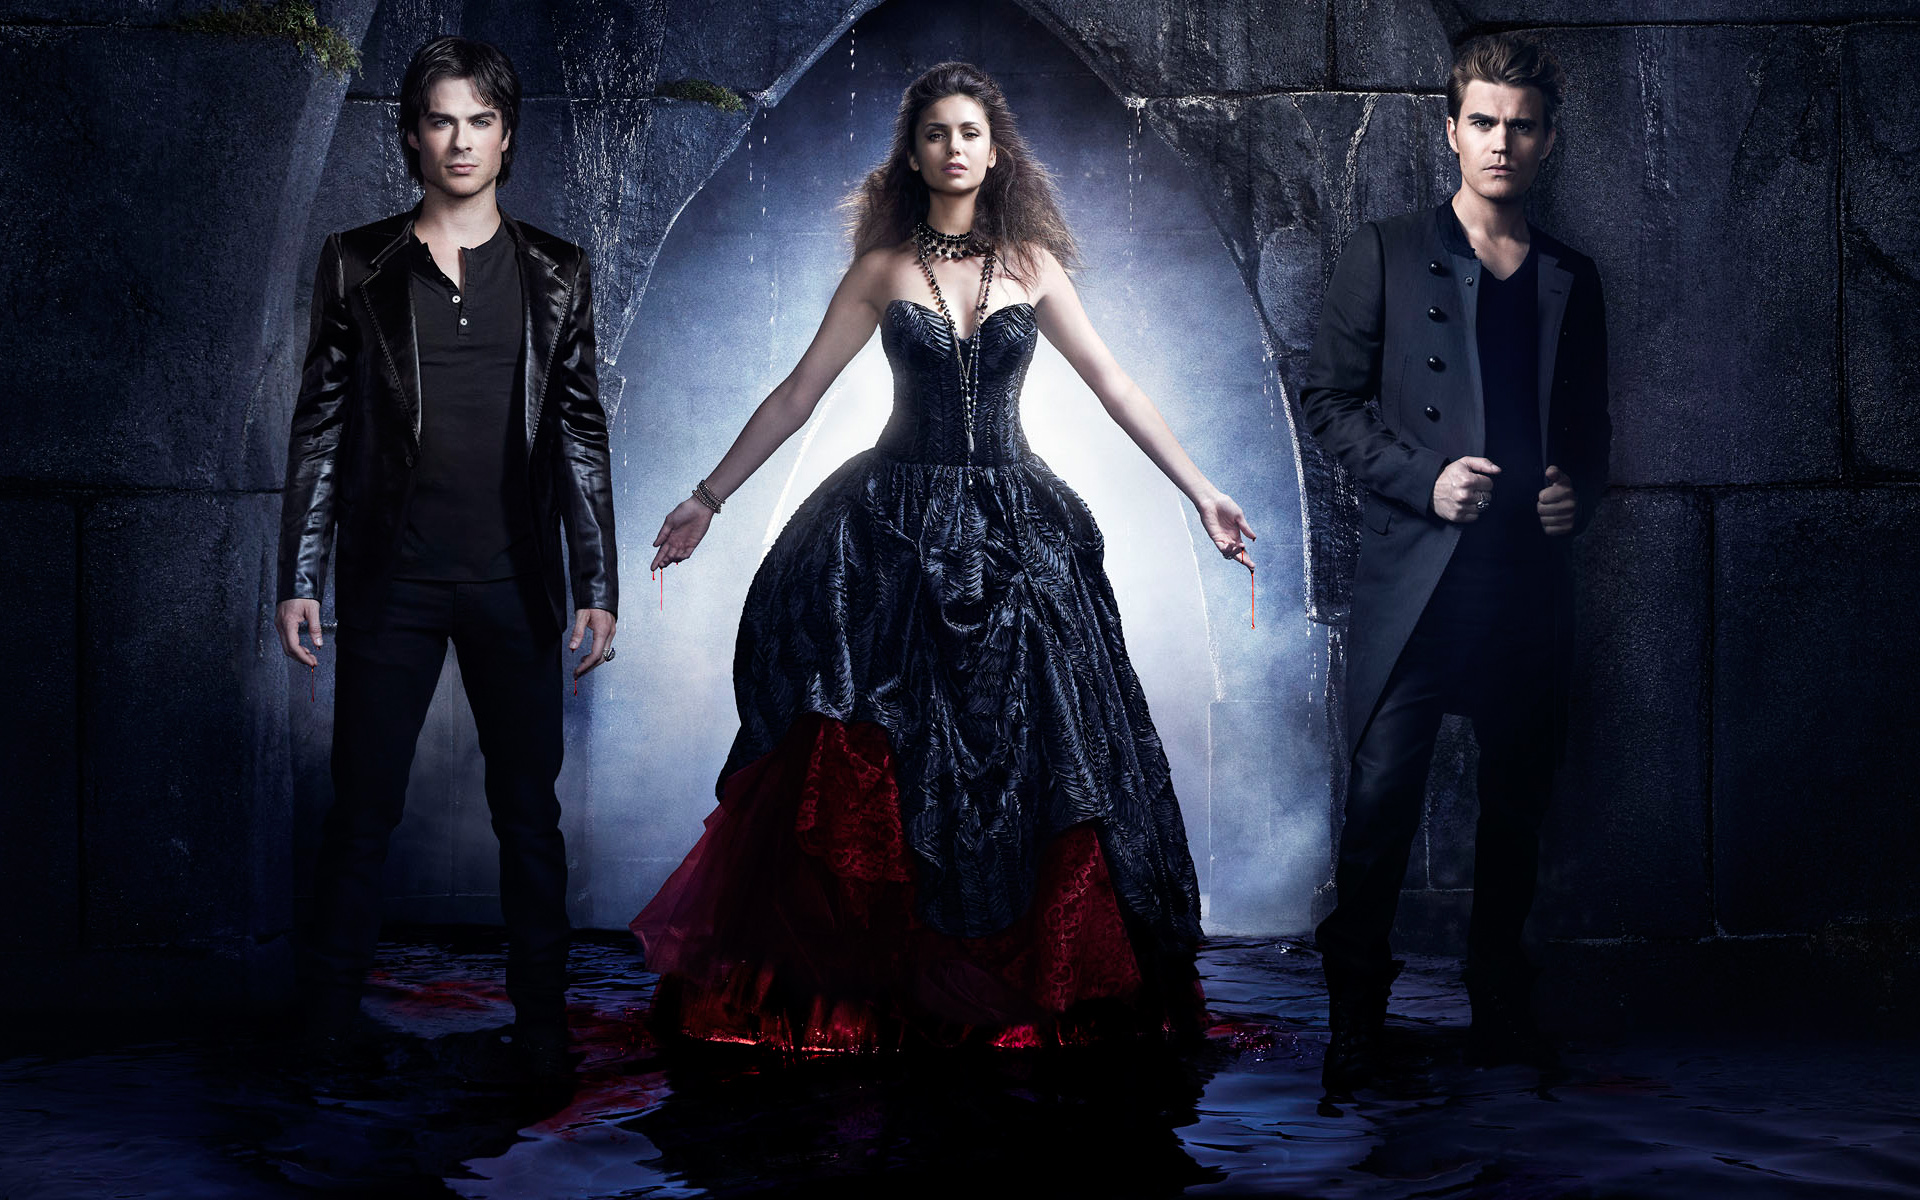 Vampire Diaries Season 4 202.05 Kb